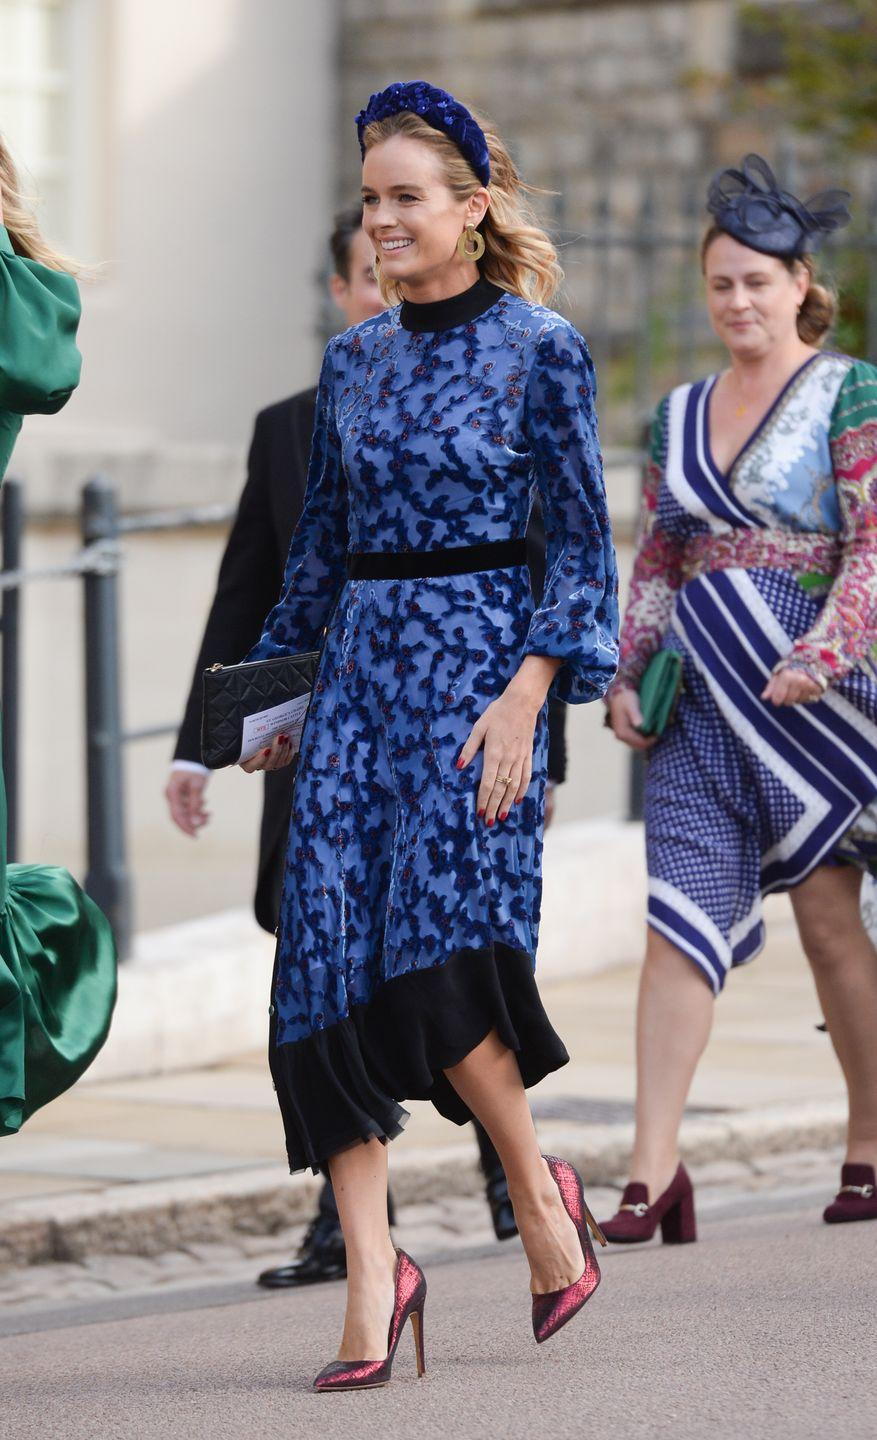 <p>Cressida Bonas' unique velvet midnight blue dress looked cracking paired with the jewel tones of her heels and oversized headband at Princess Eugenie and Jack Brooksbank's nuptials. </p>